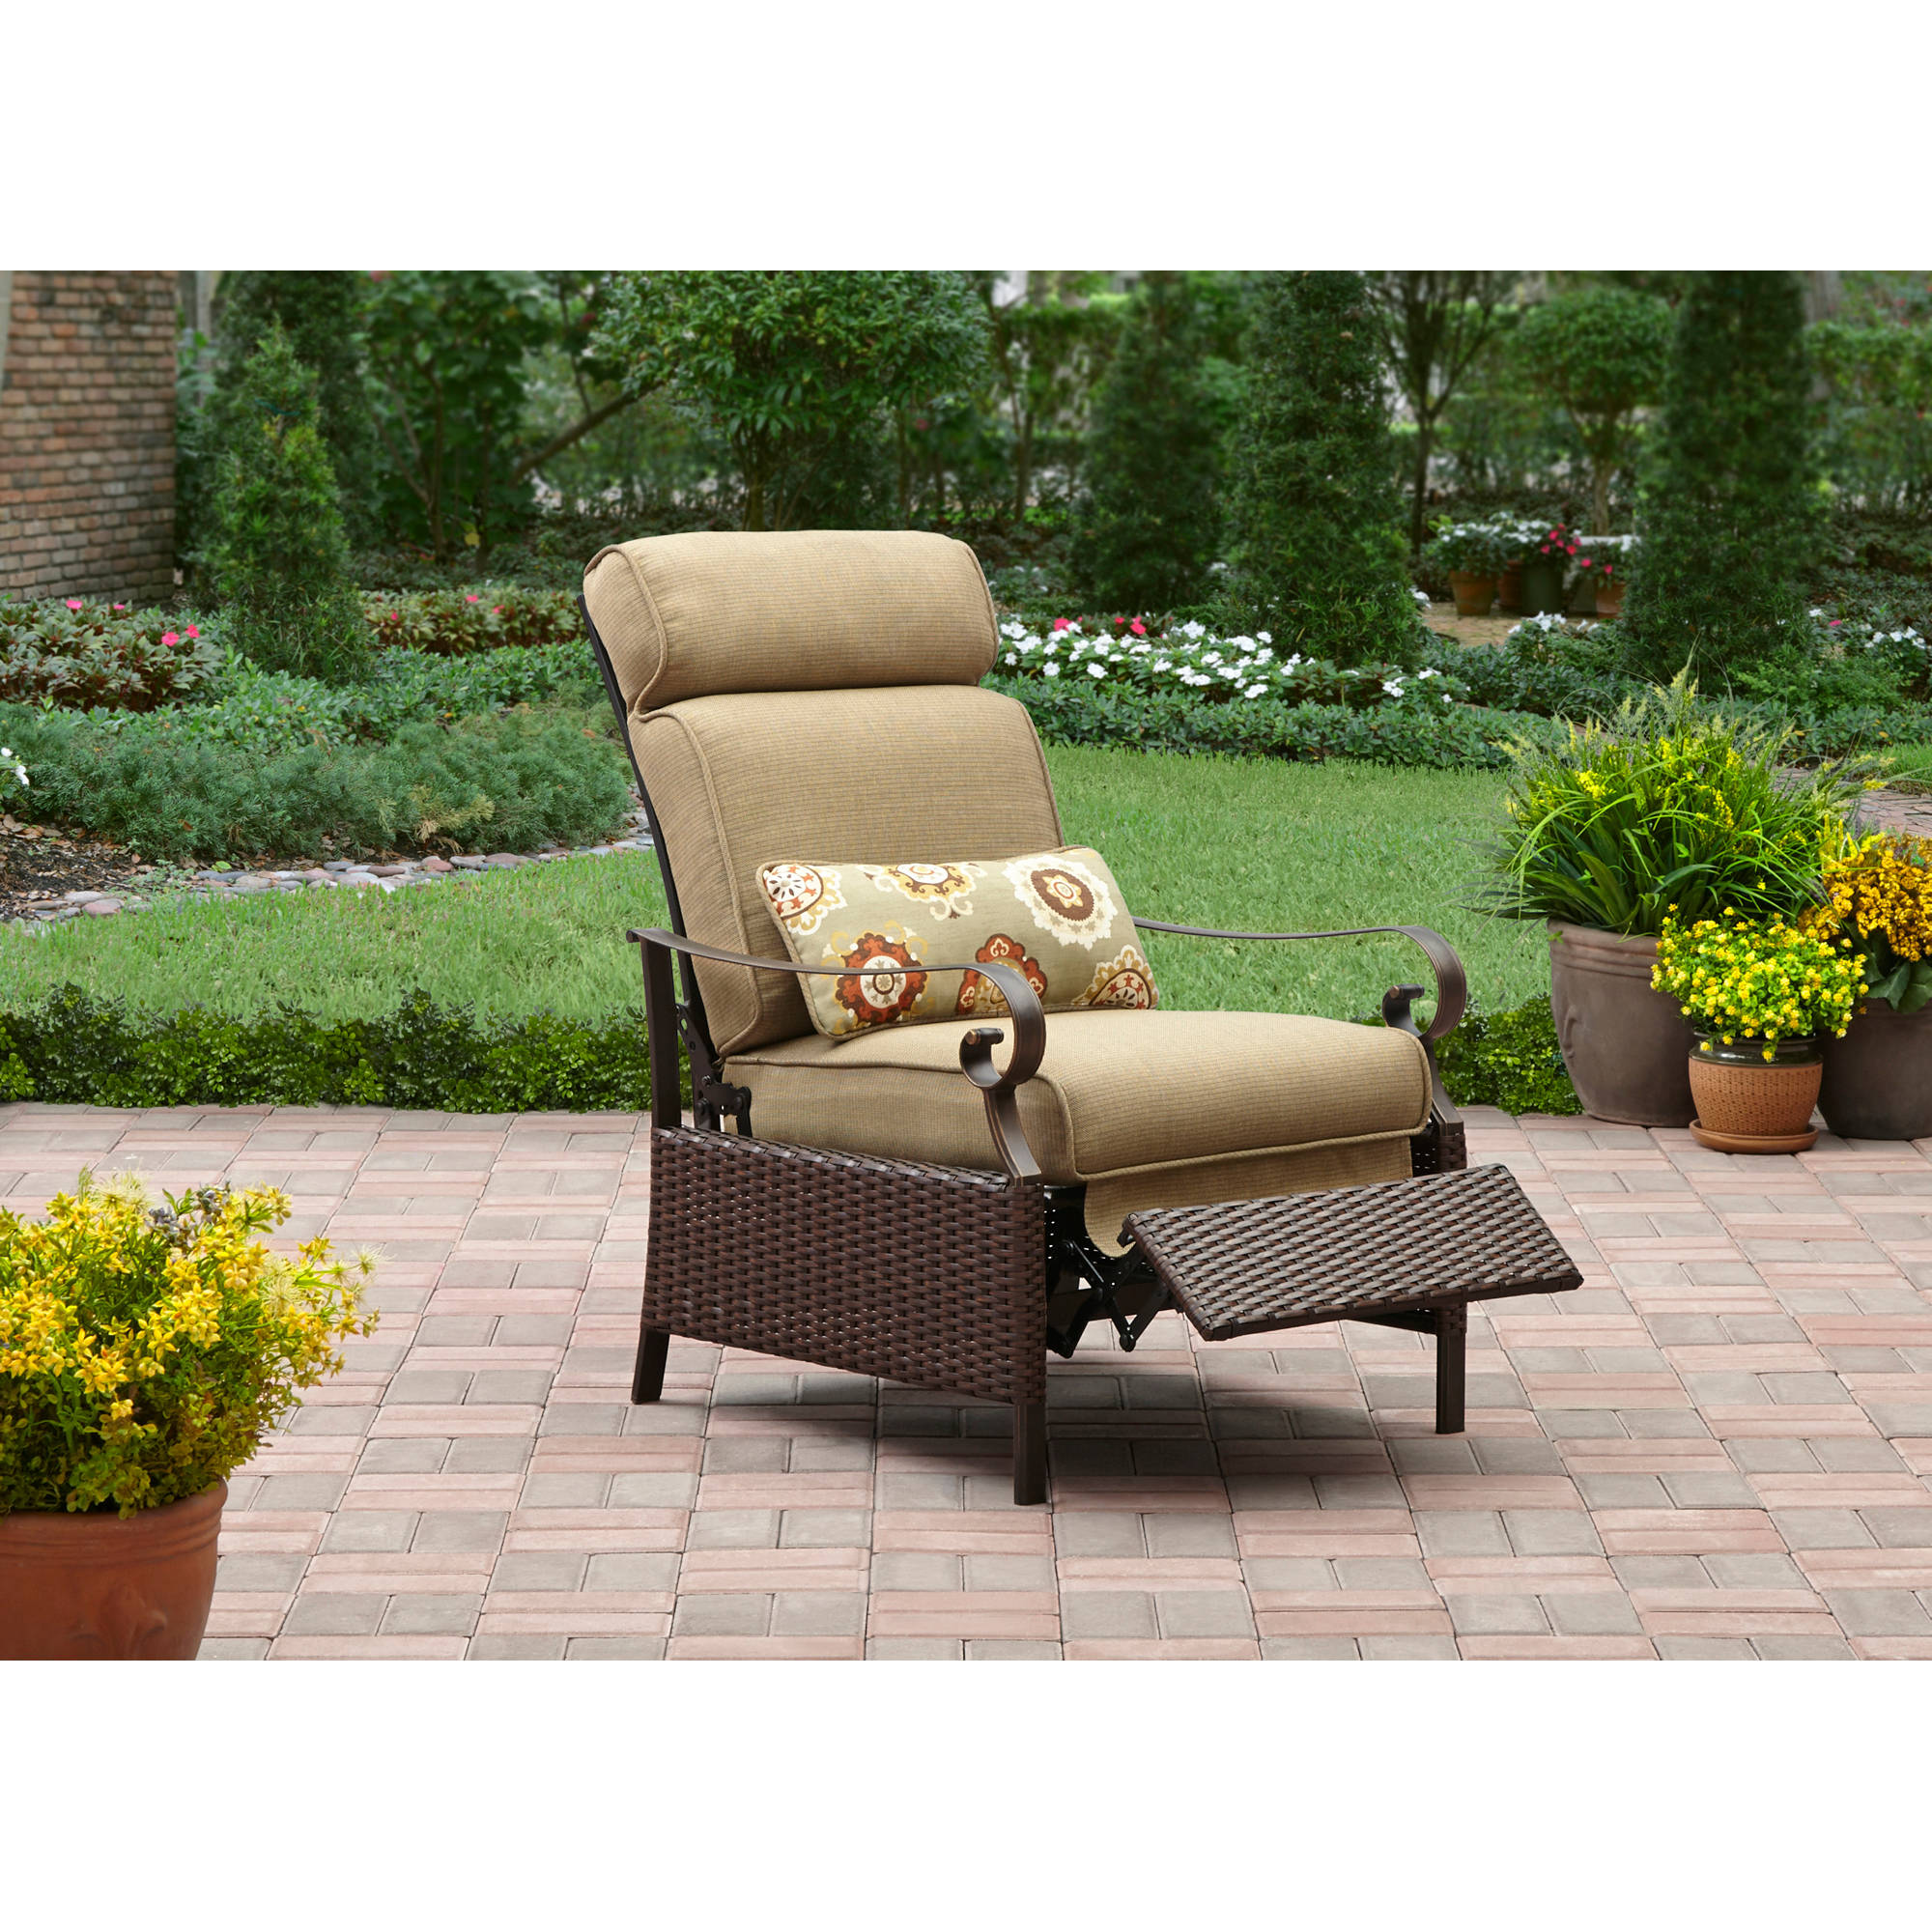 sc 1 st  Walmart & Better Homes and Gardens Riverwood Recliner Tan - Walmart.com islam-shia.org